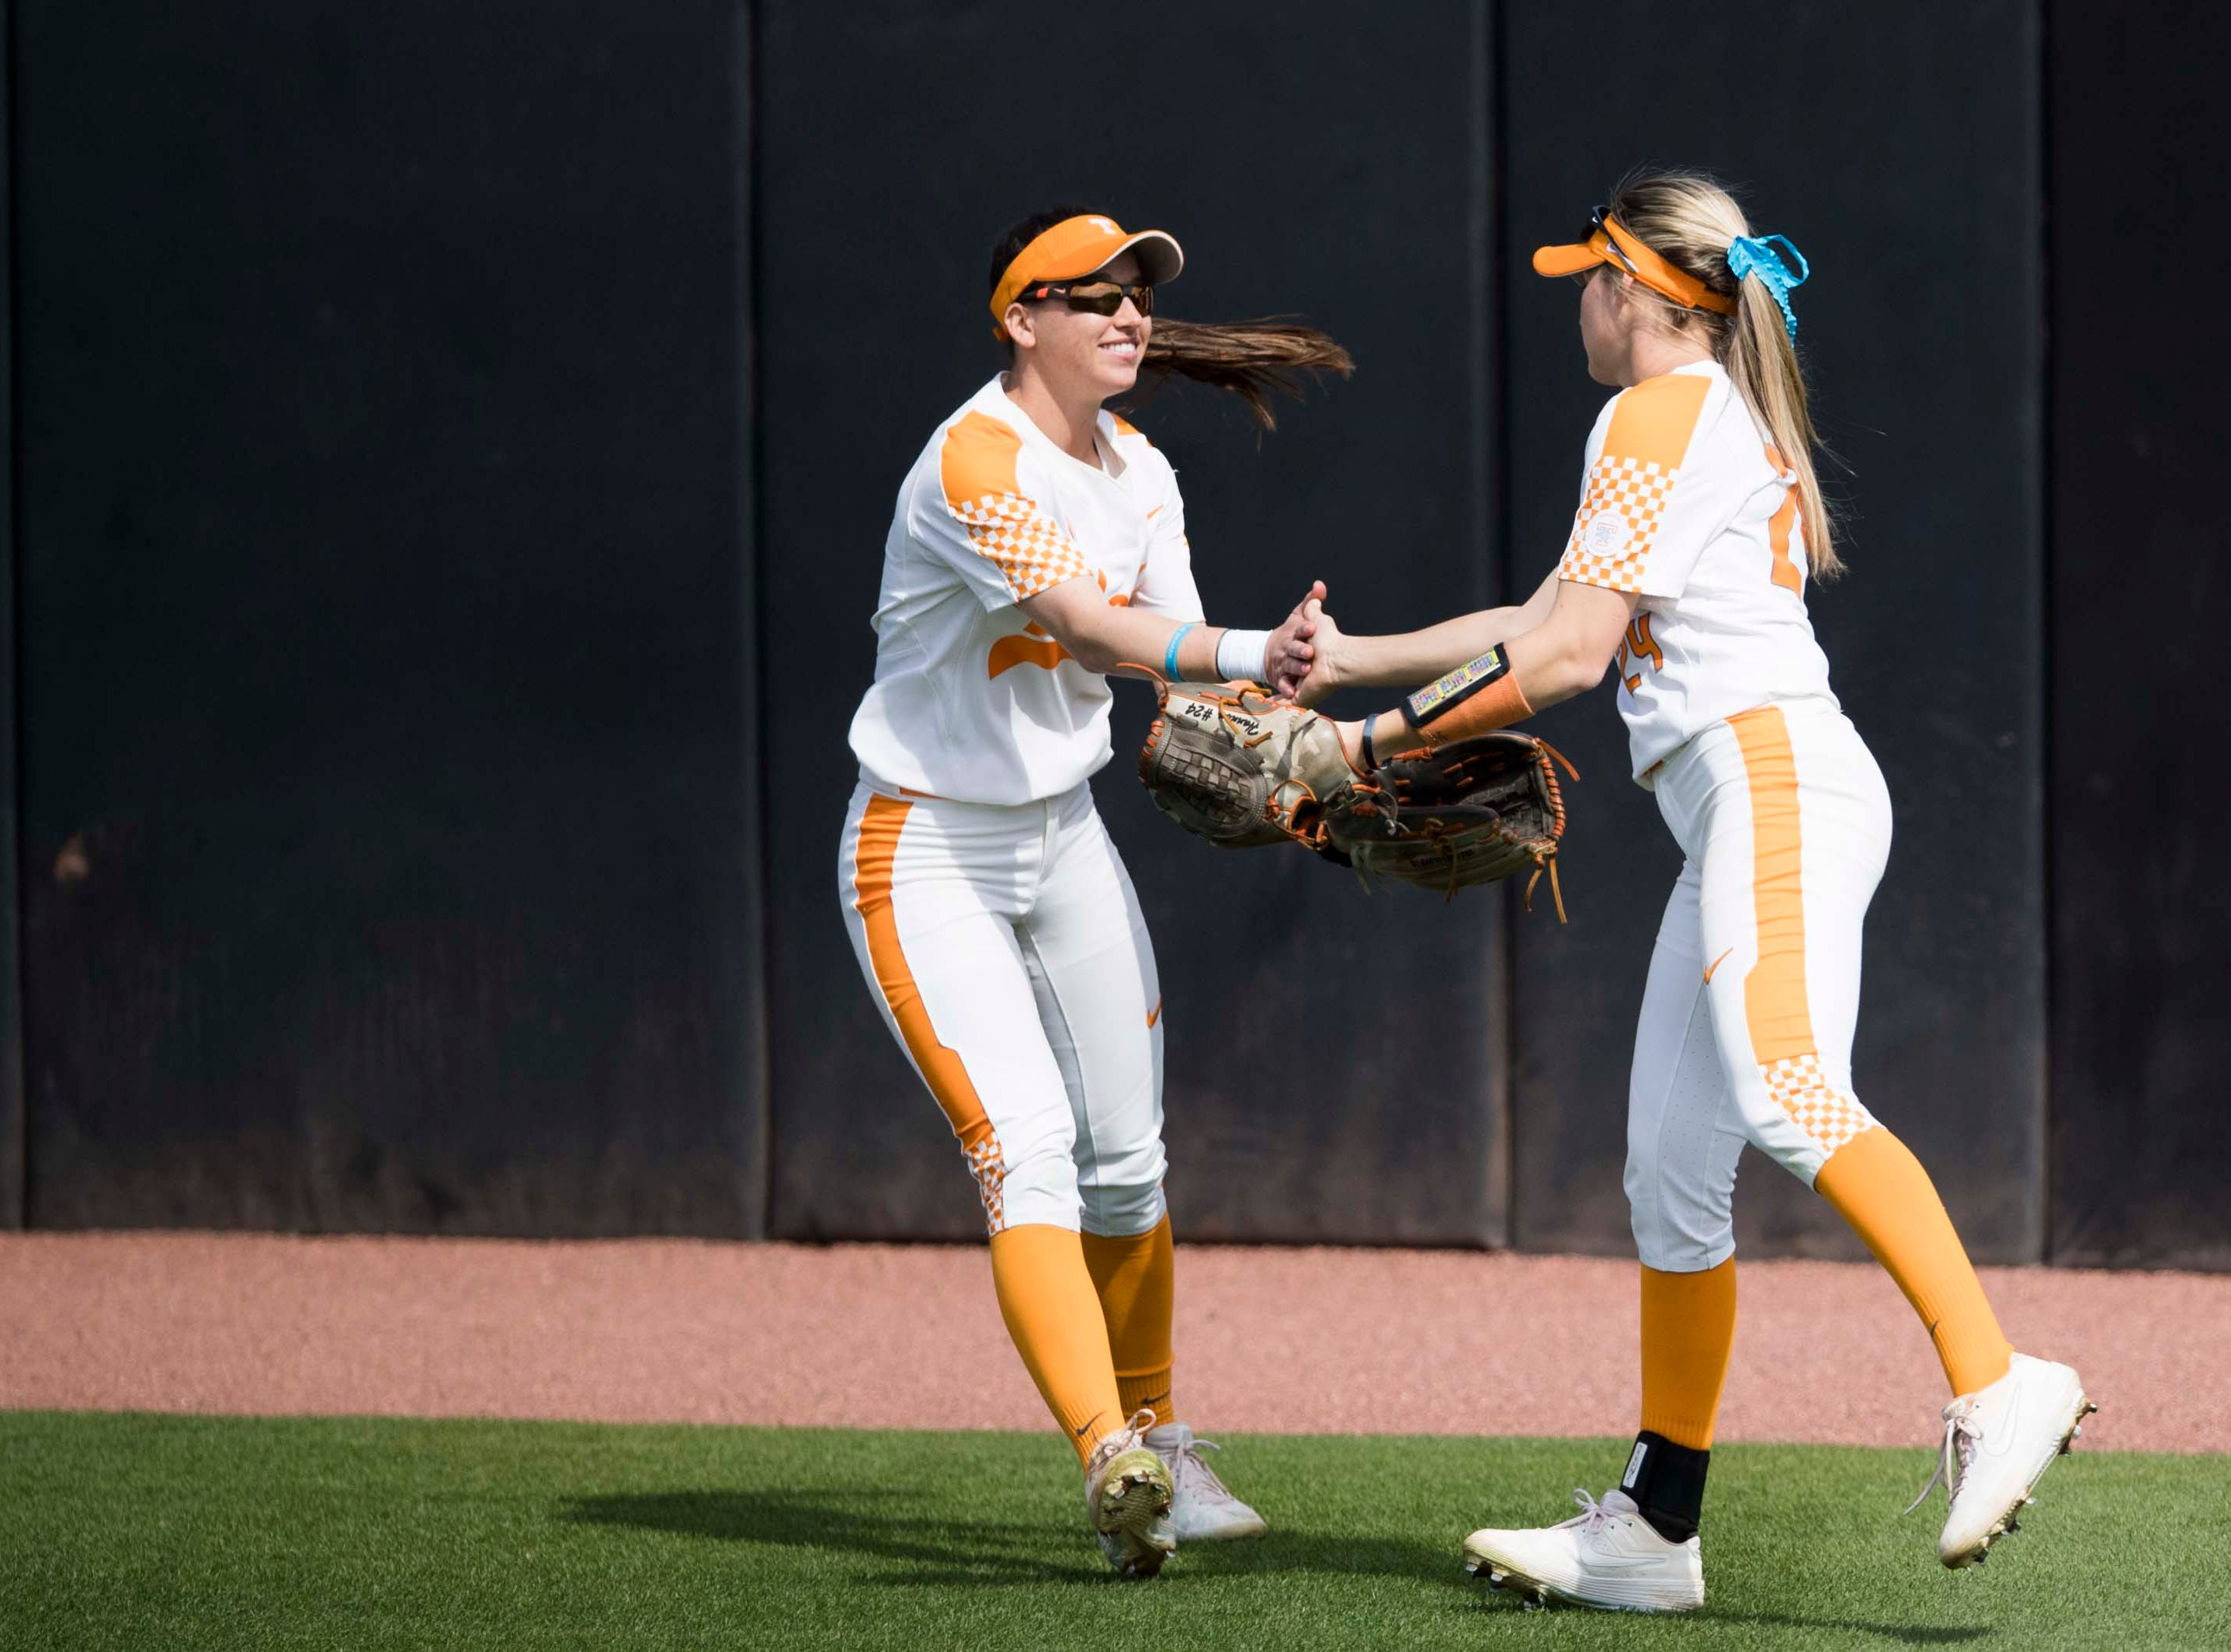 Tennessee outfielder Jenna Holcomb (2) congratulates Tennessee outfielder Cailin Hannon (24) on her catch during a Lady Vols softball game against Arkansas at Sherri Parker Lee stadium on University of Tennessee's campus in Knoxville Sunday, March 24, 2019. The Lady Vols defeated Arkansas.